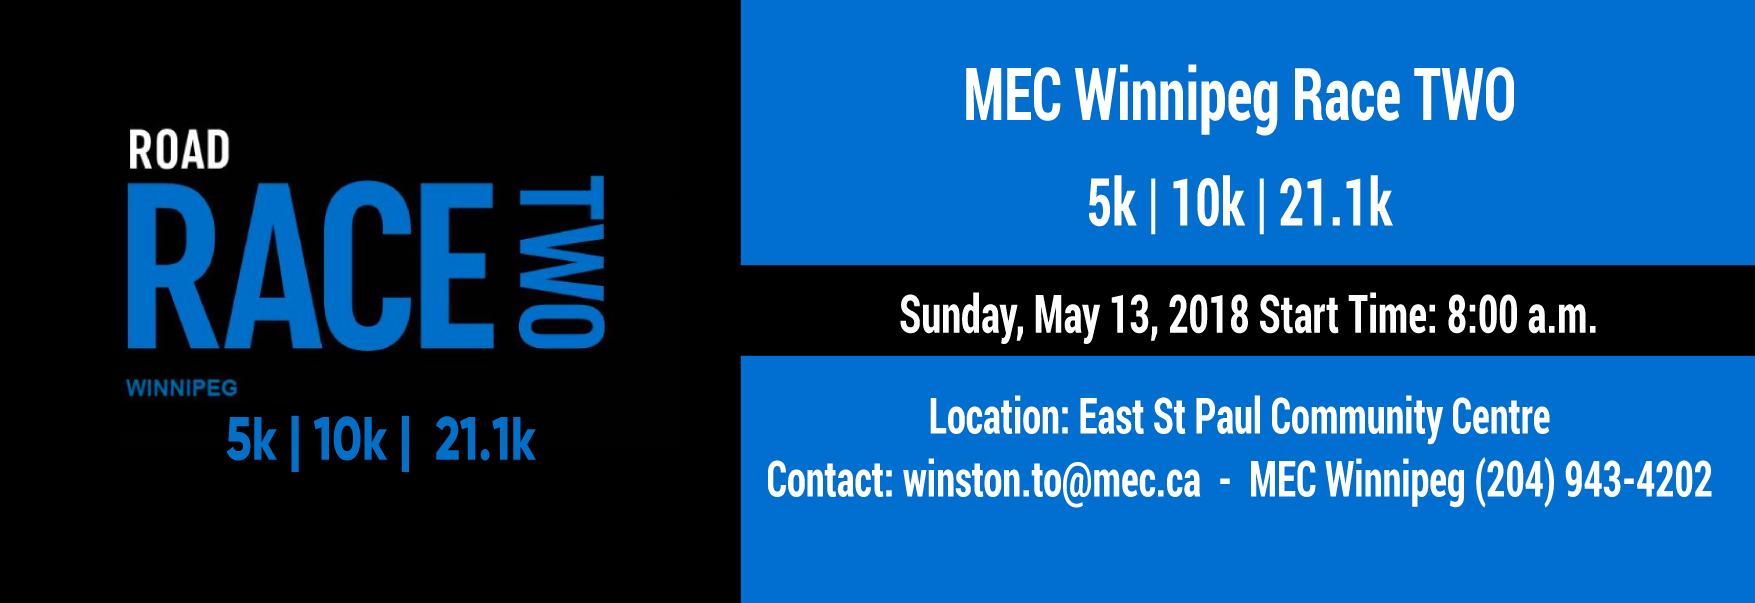 MEC Winnipeg Race Two